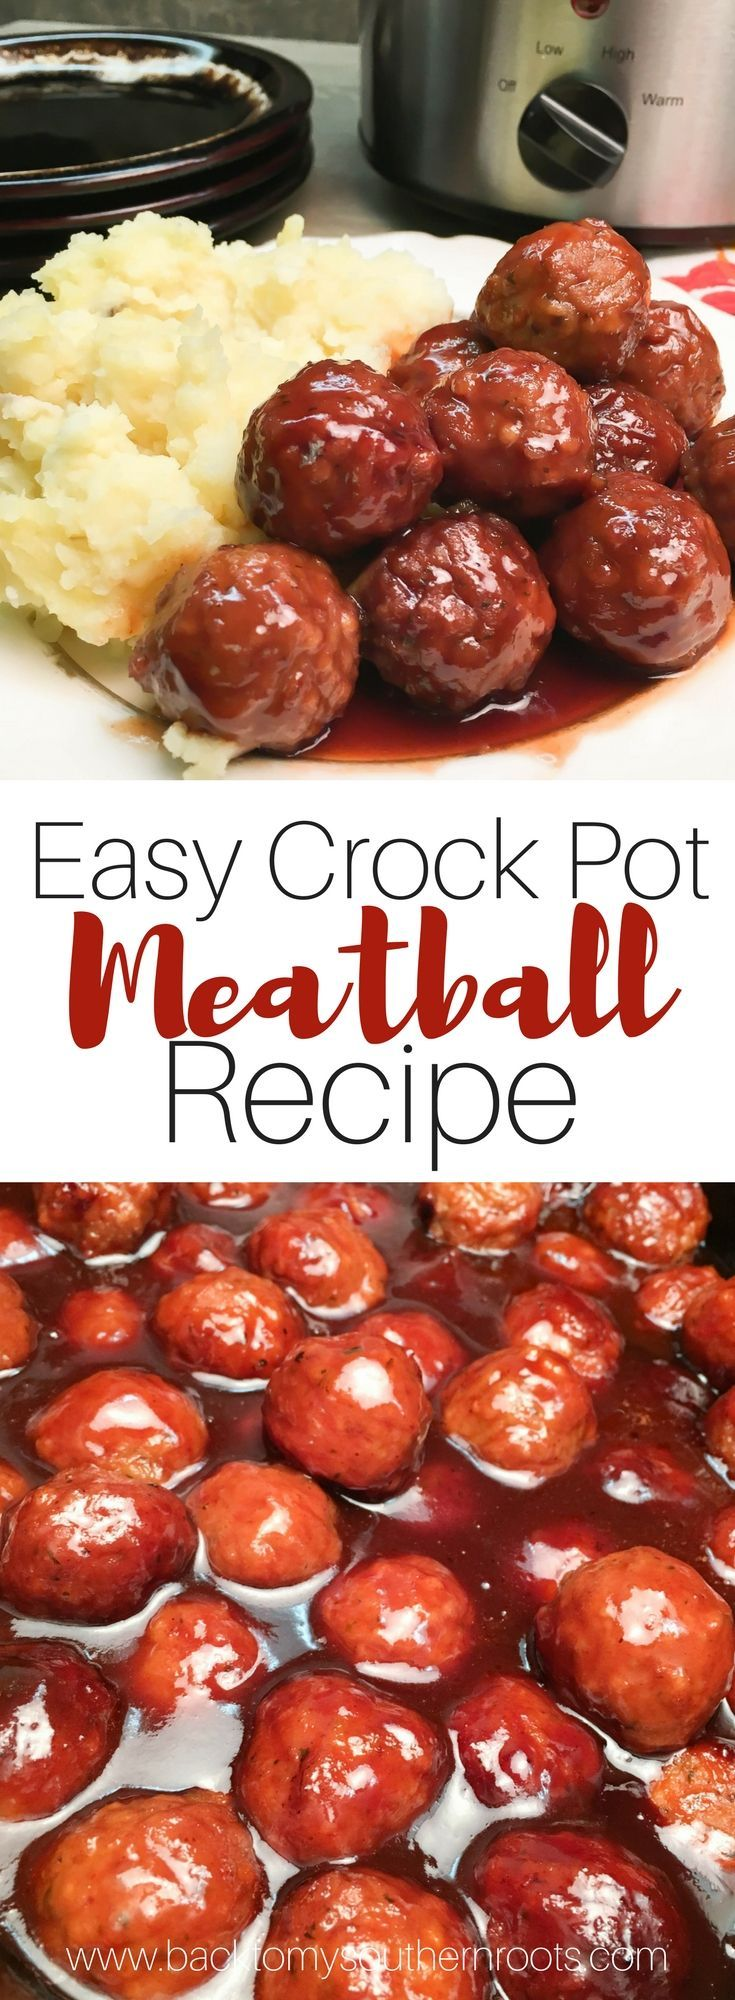 Easy Crock Pot Meatball Recipe is made up of frozen meatballs, barbecue and grape jelly. The dish makes a great dinner or an appetizer for church or a party, and is easy to make. #easy #recipe #crockpot #meatballs #grapejelly #barbecue #holiday #party